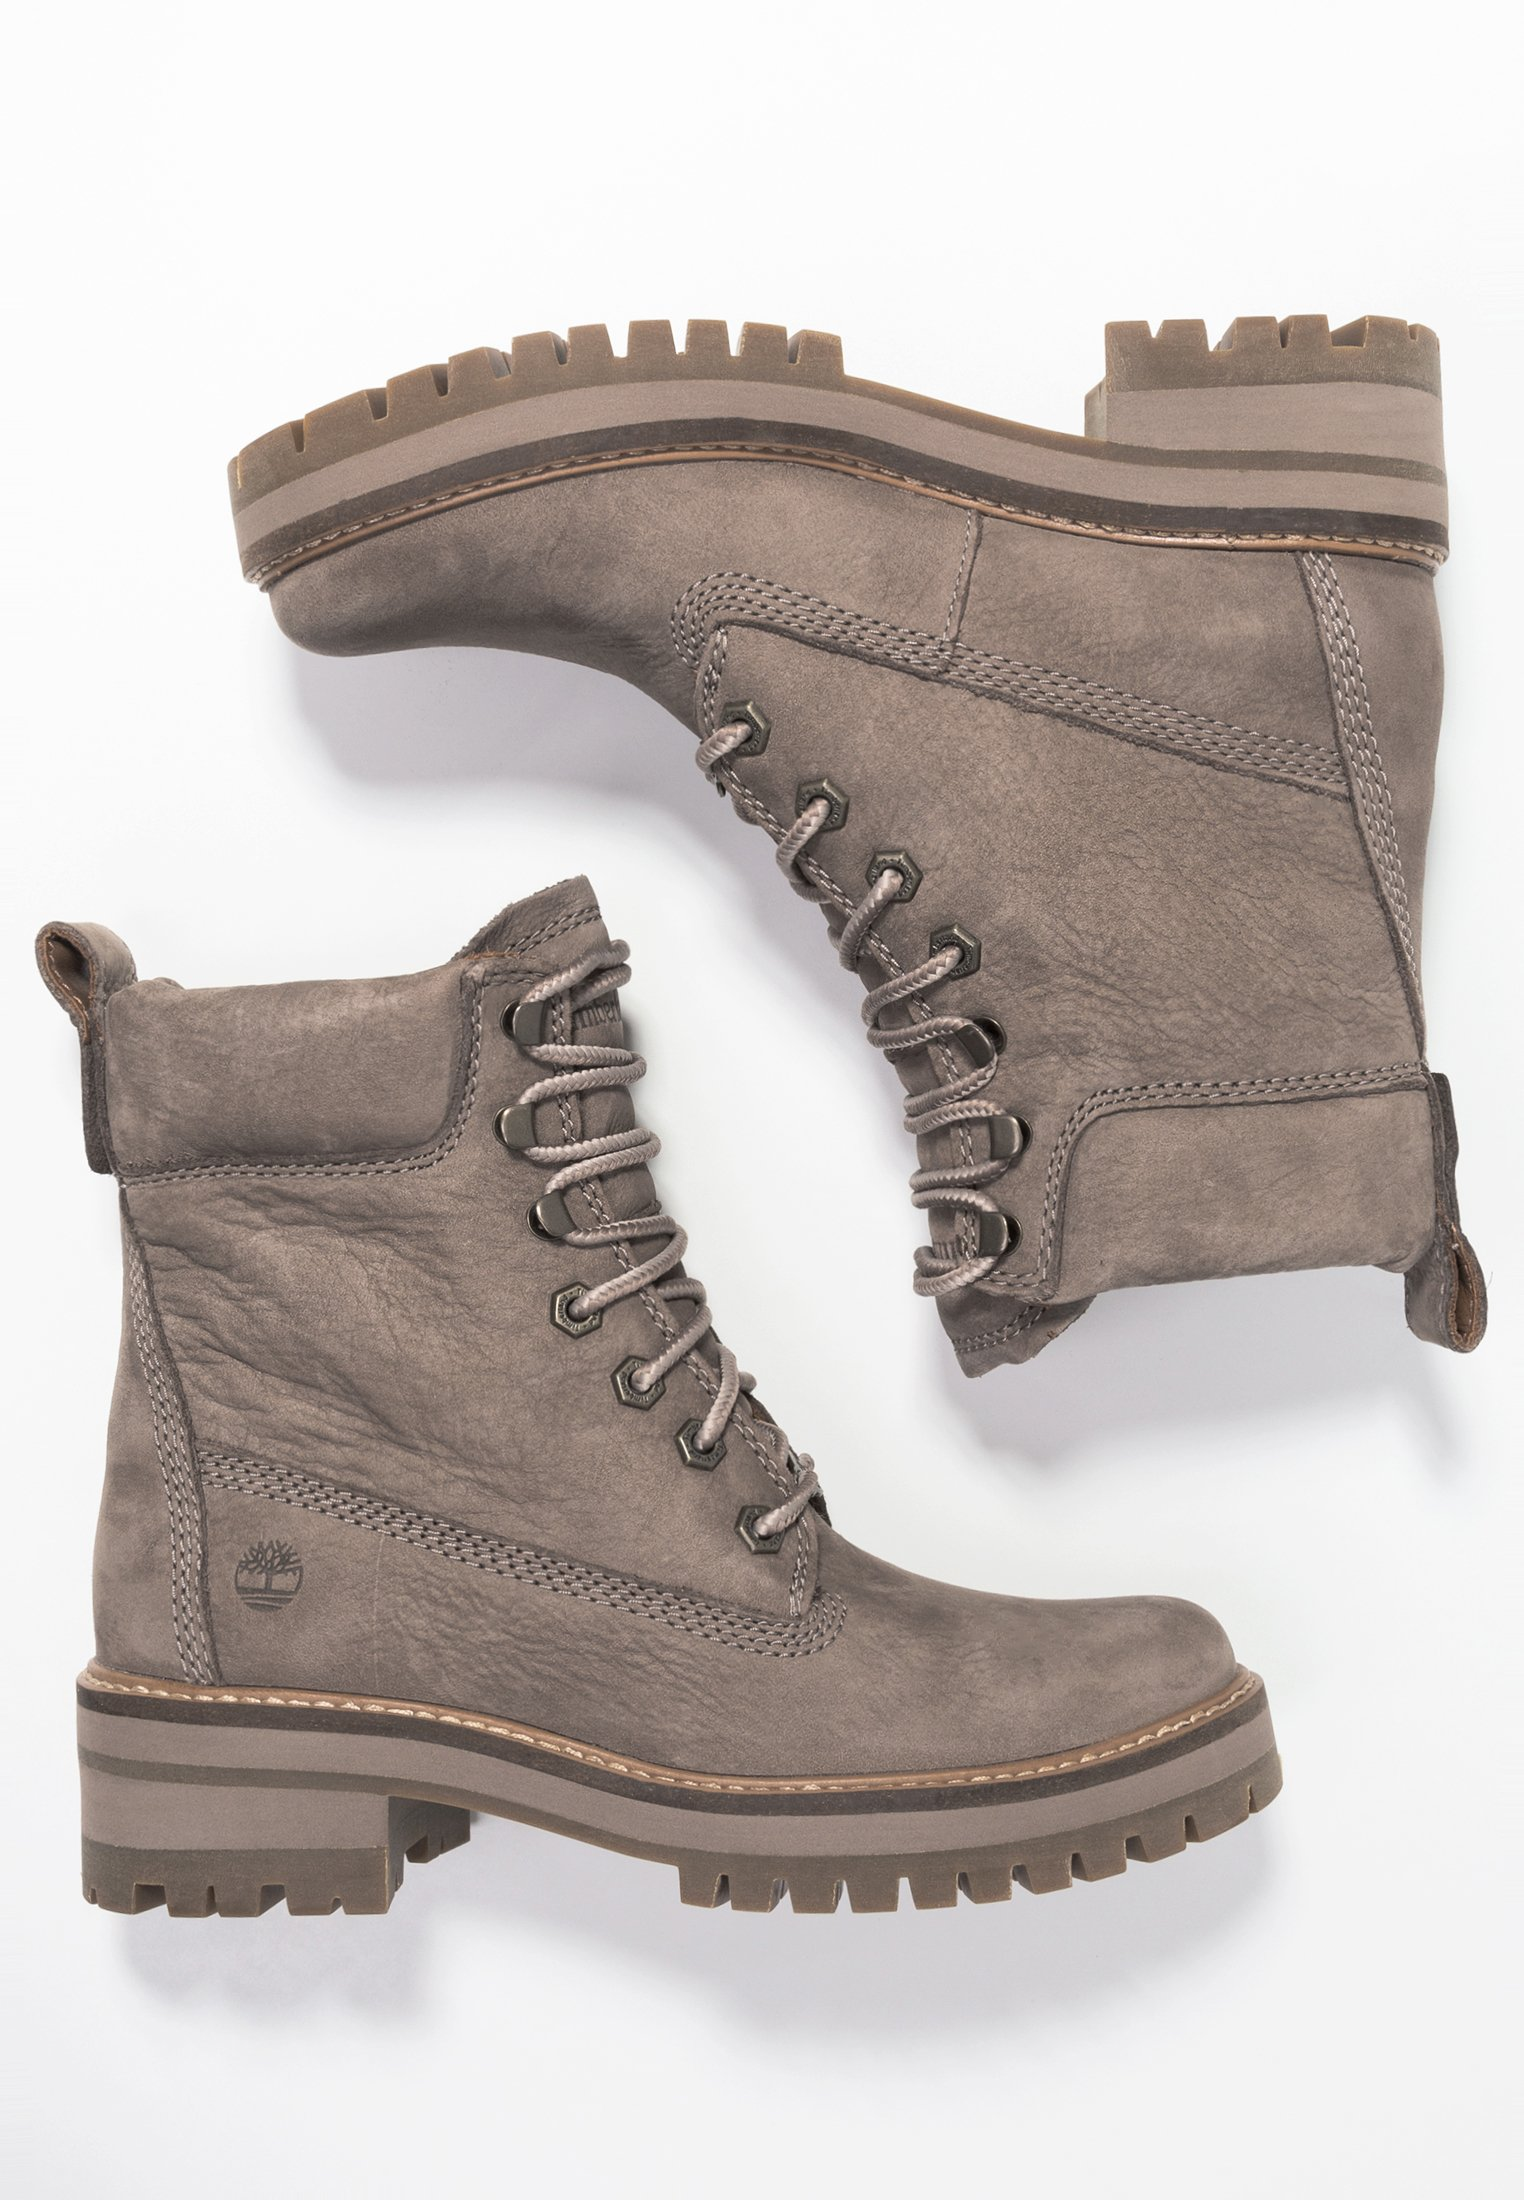 Timberland COURMAYEUR VALLEY BOOT Veterboots taupe grey